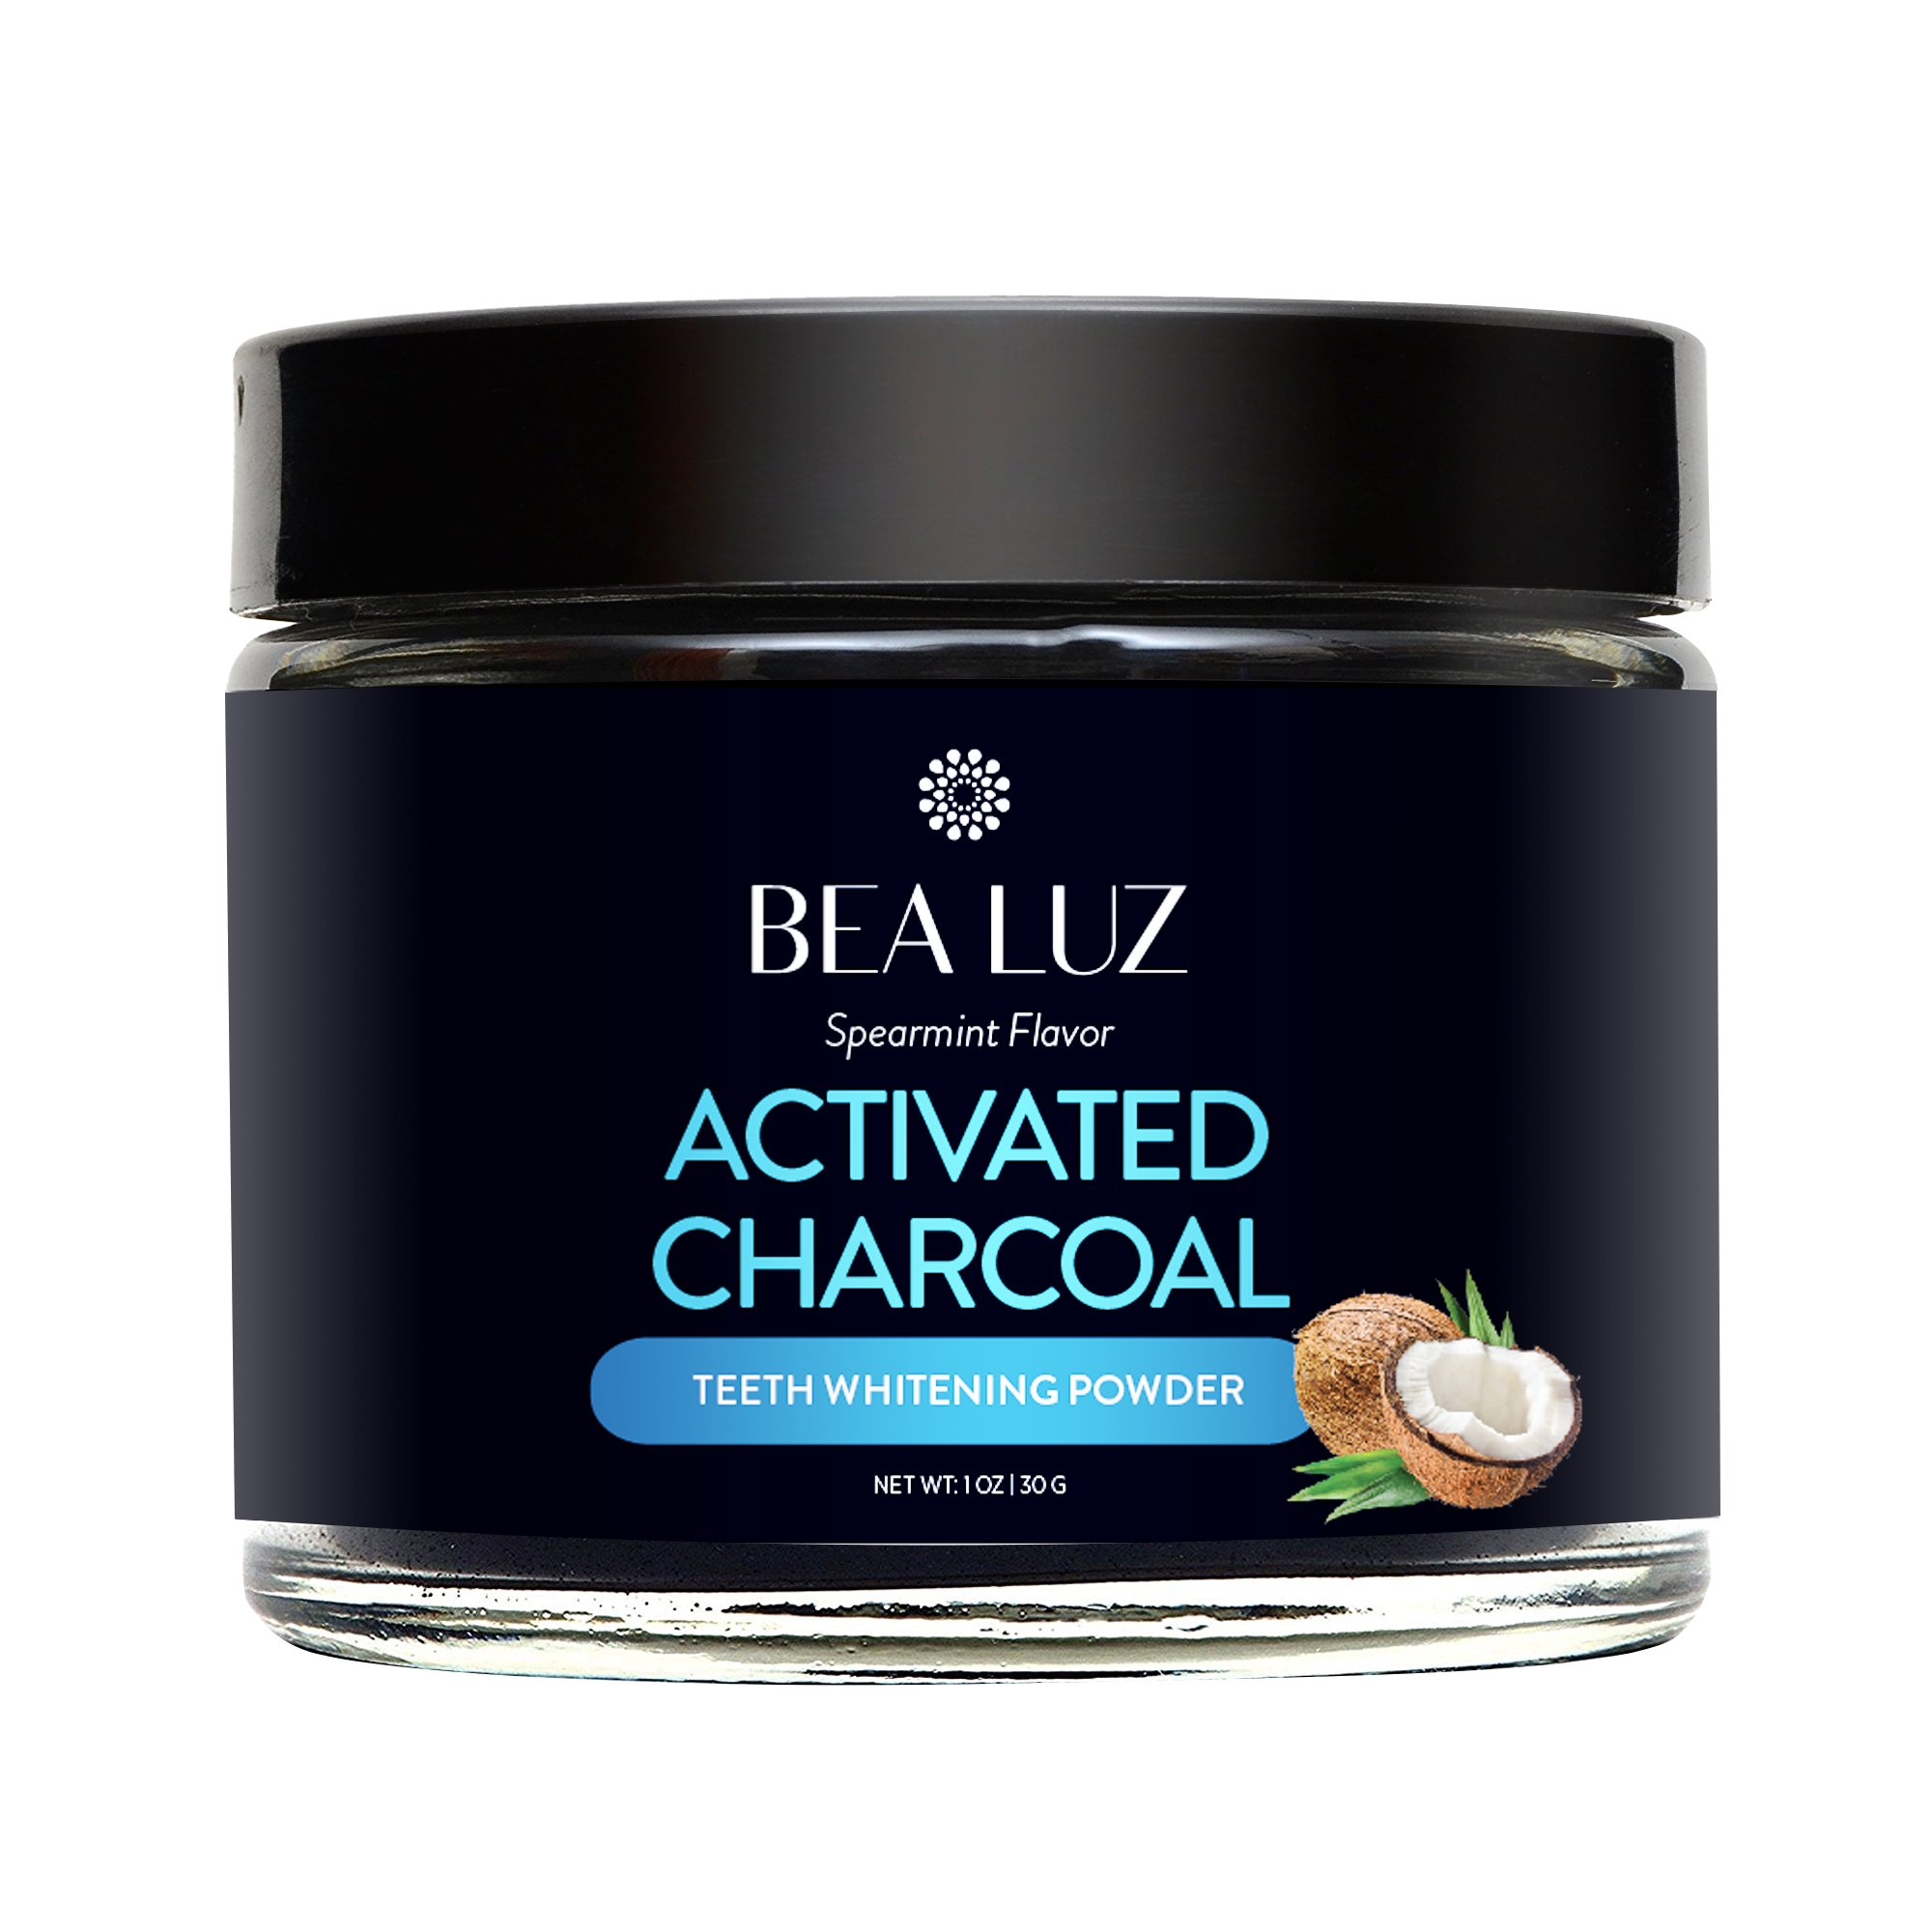 Teeth Whitening Activated Charcoal Powder – From Organic Coconut Shell and Food Grade Formula – All Natural Spearmint Flavor Tooth Whitener (5G) by Gemmaz (Image #1)